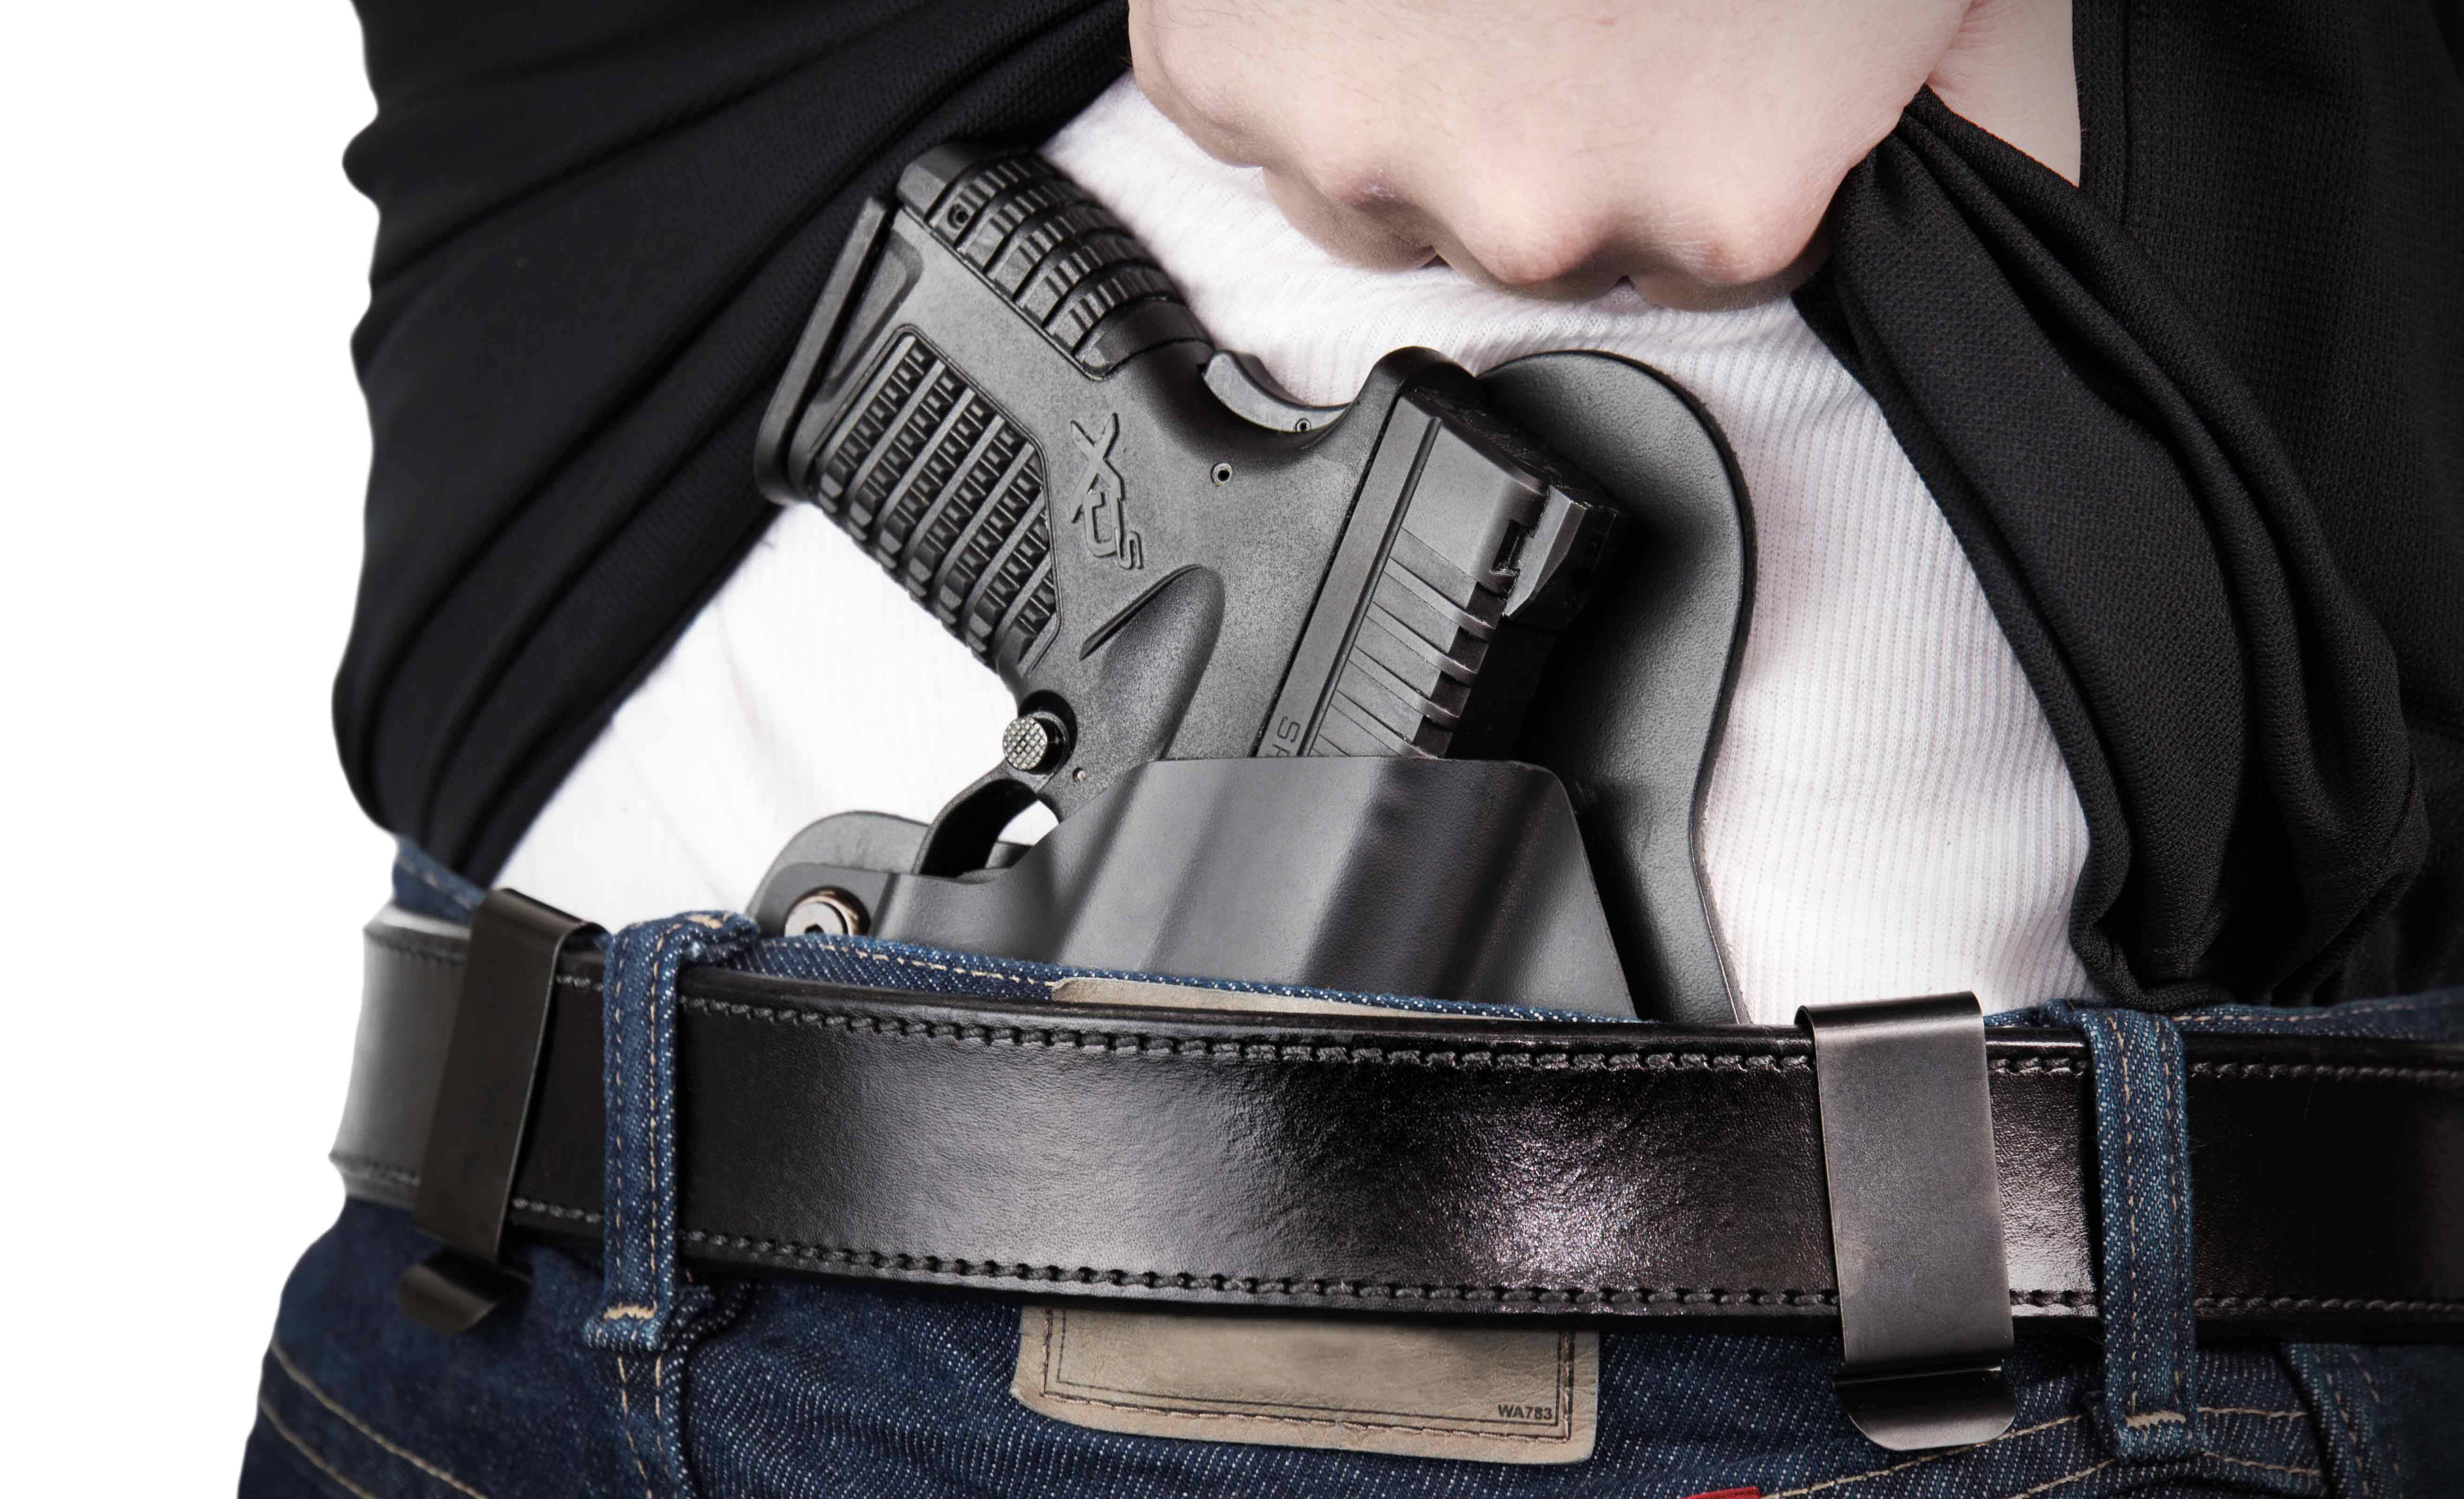 Florida Bill Allowing Teachers To Carry Guns Goes To Governor